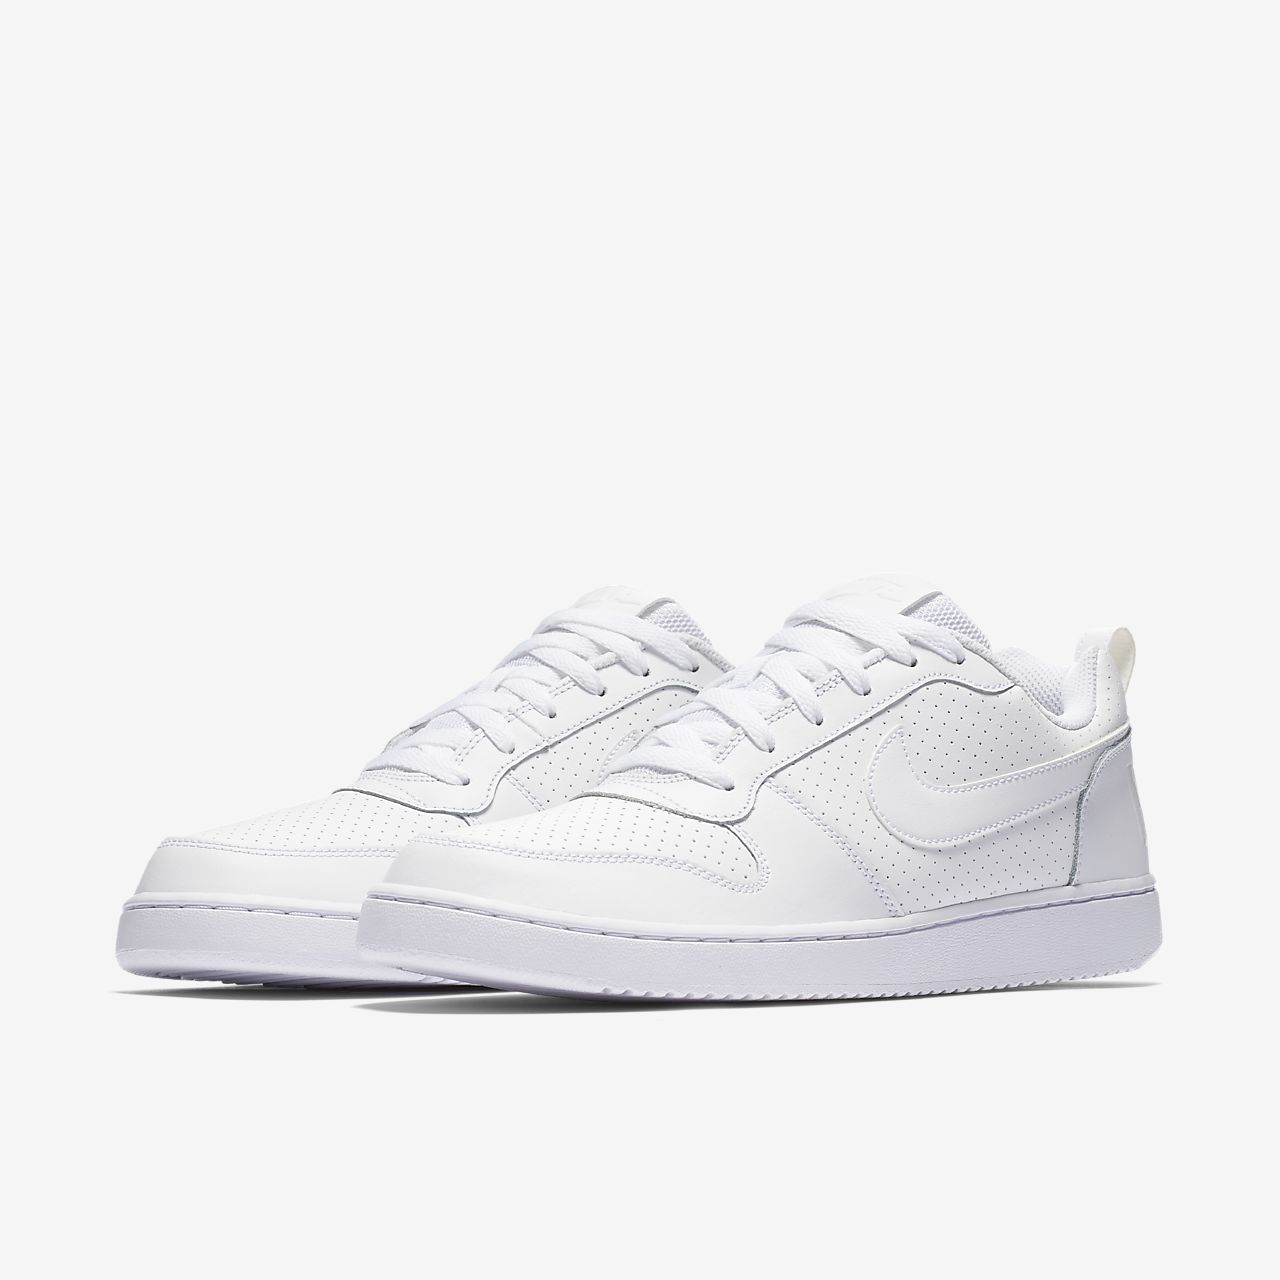 premium selection 91c0f 4b48d ... NikeCourt Borough Low Zapatillas - Hombre